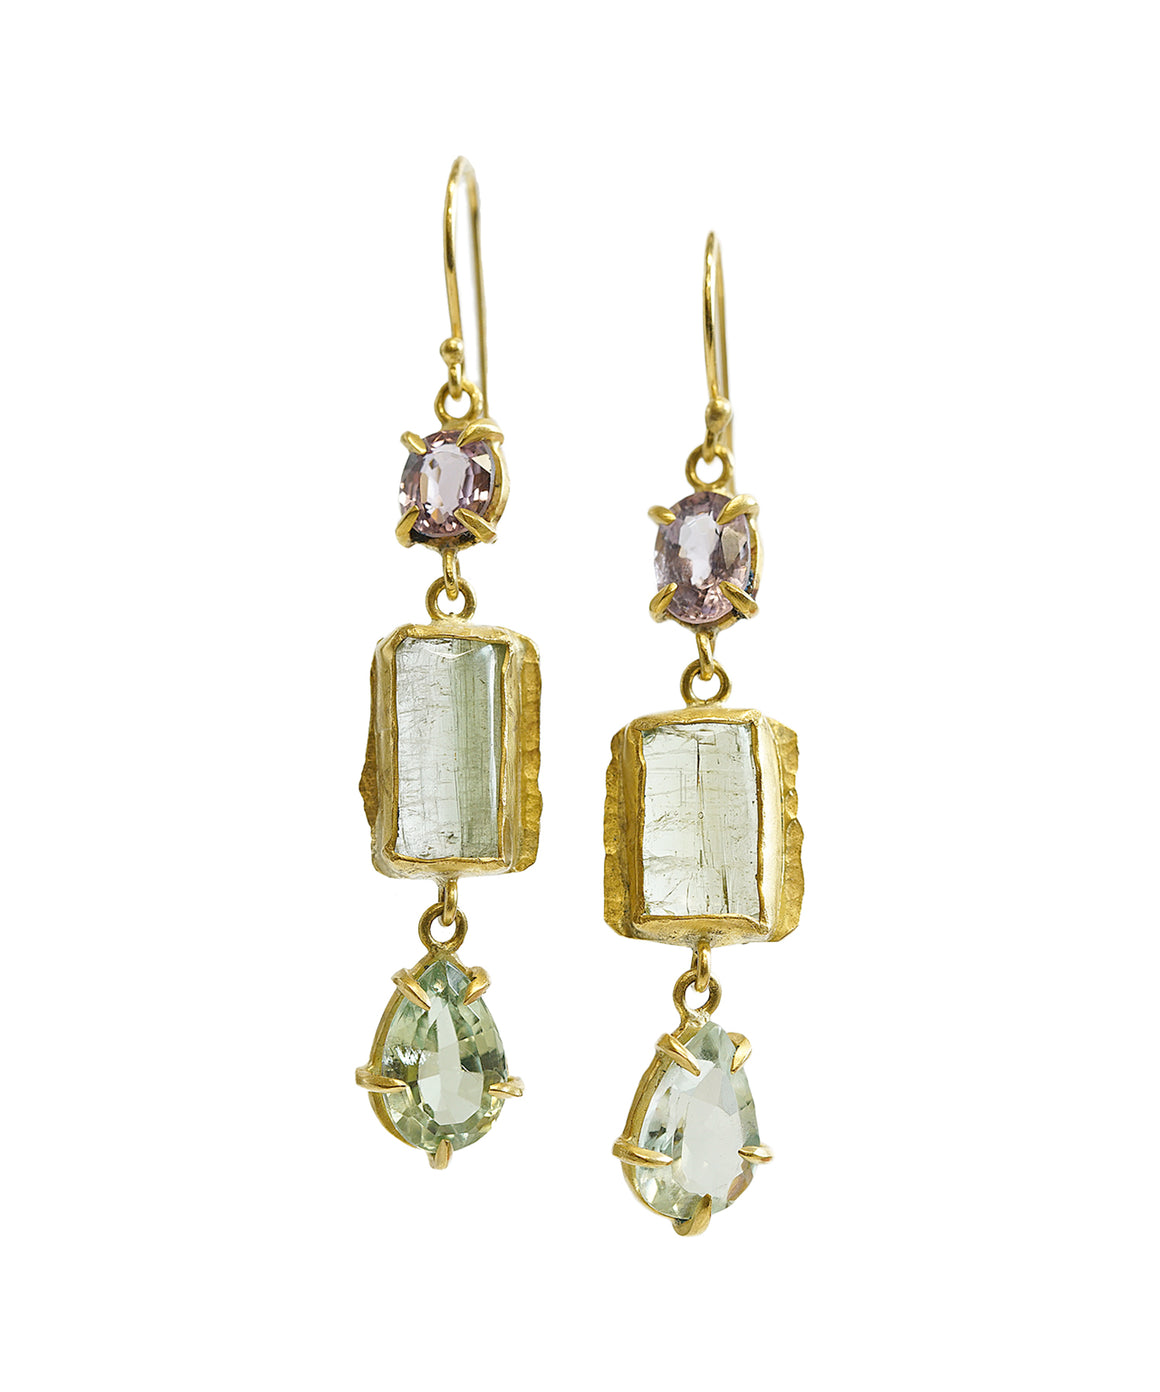 Tourmaline and spinel long earrings - Lesley Ann Jewels